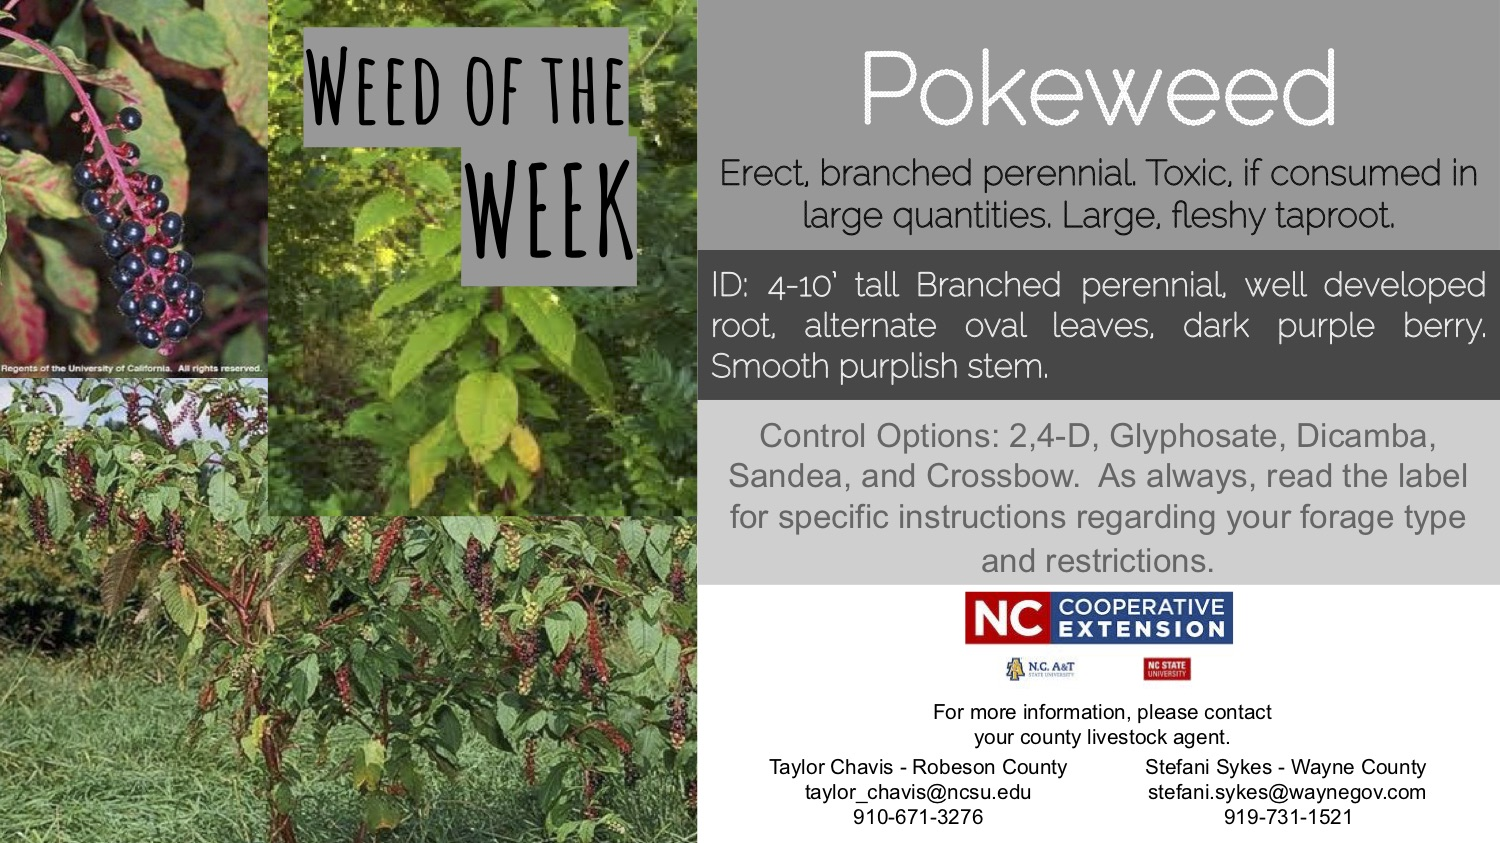 Information on the weed pokeweed